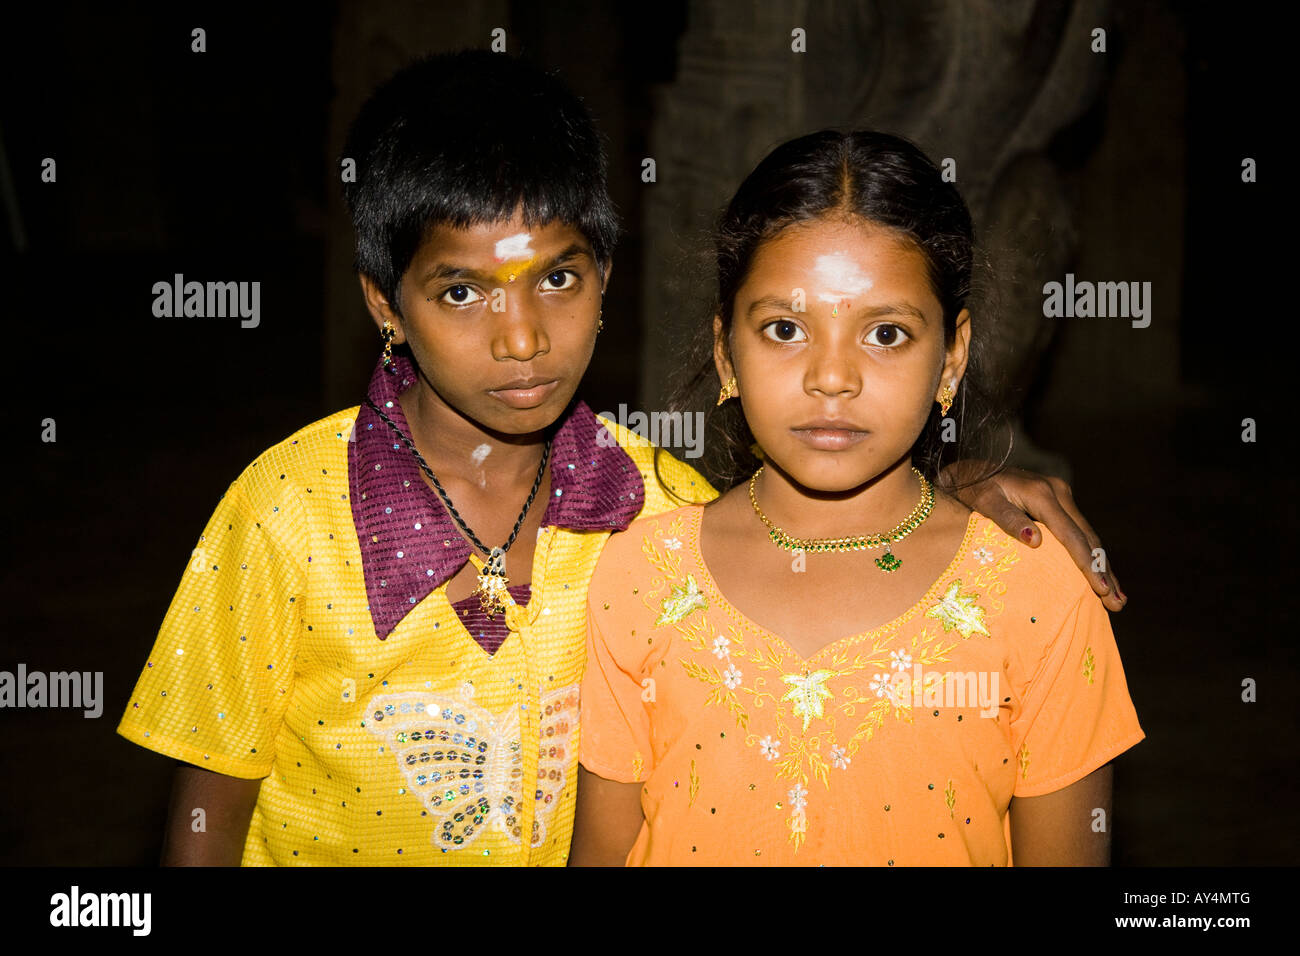 Nude Young Girls Photo Tamil Nadu - Porn Galleries-6488